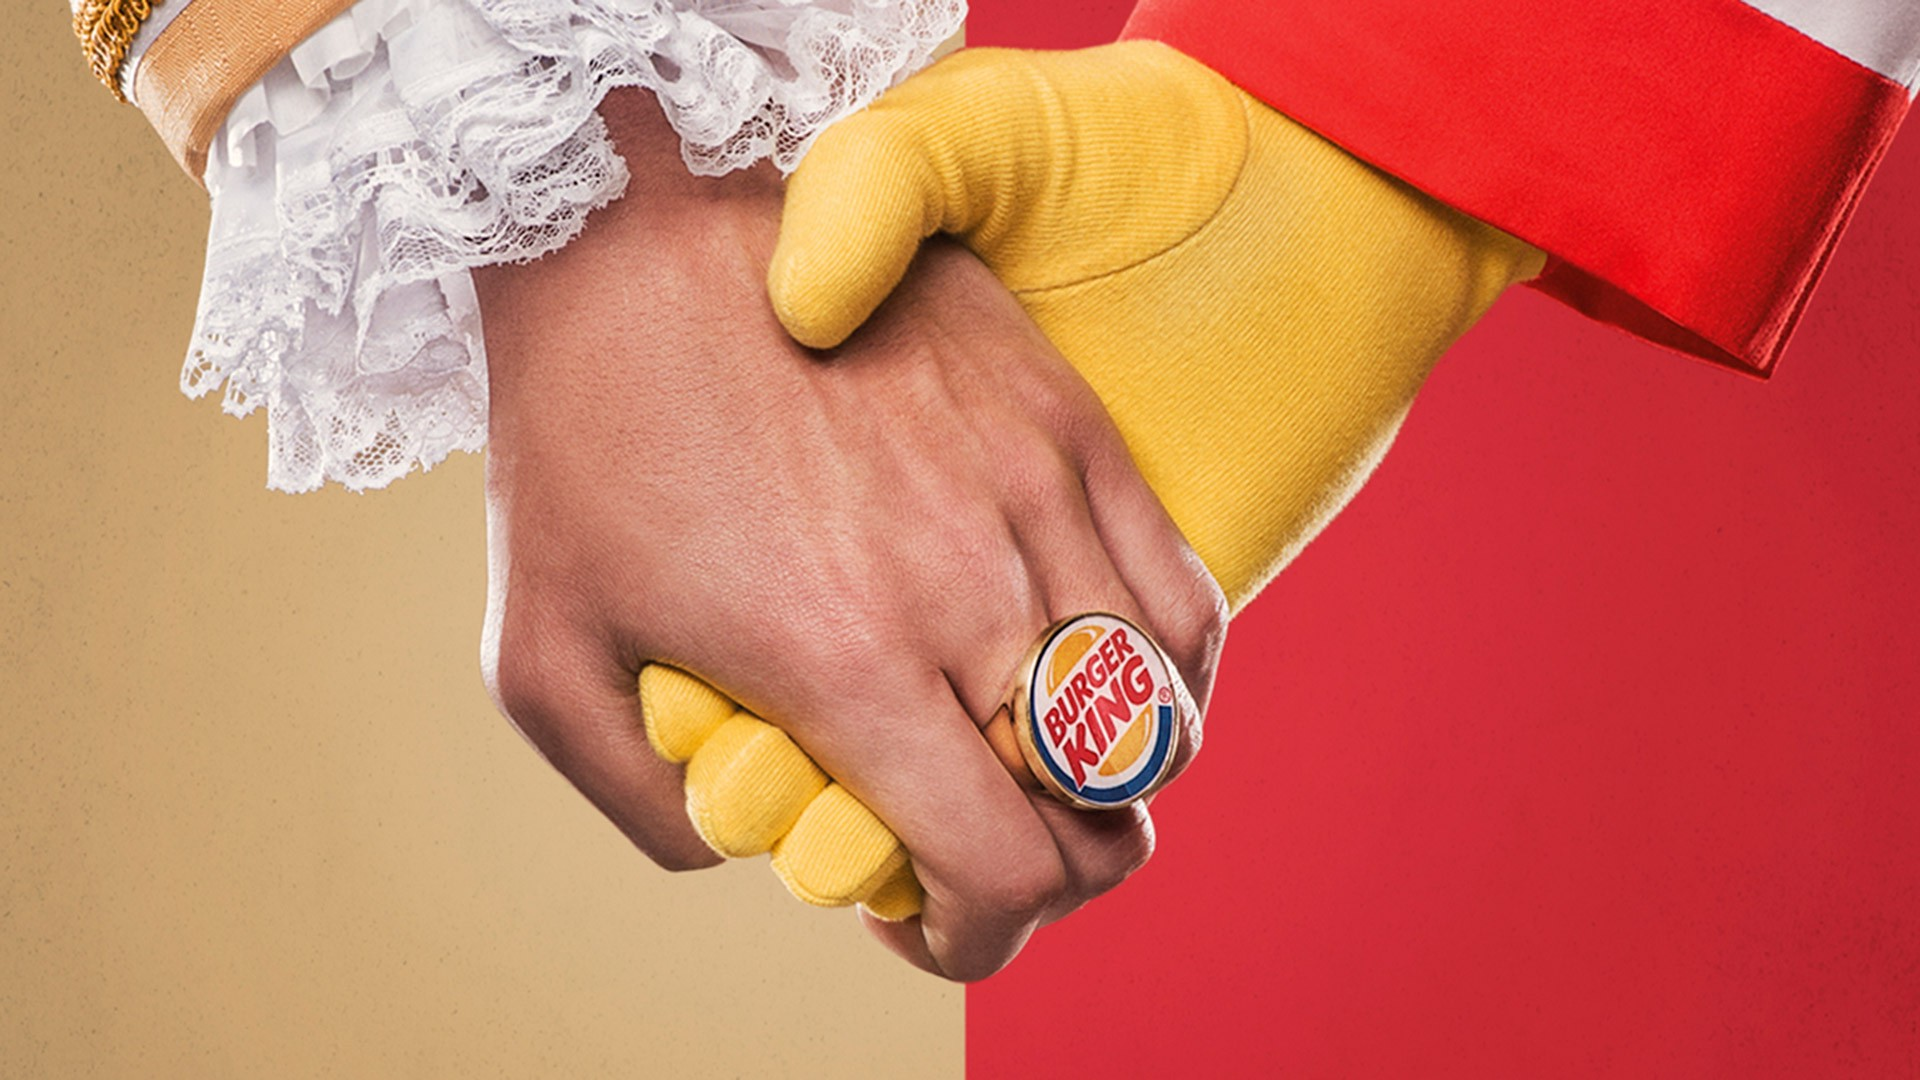 Love-Hate Relationship: Burger King and McDonald's